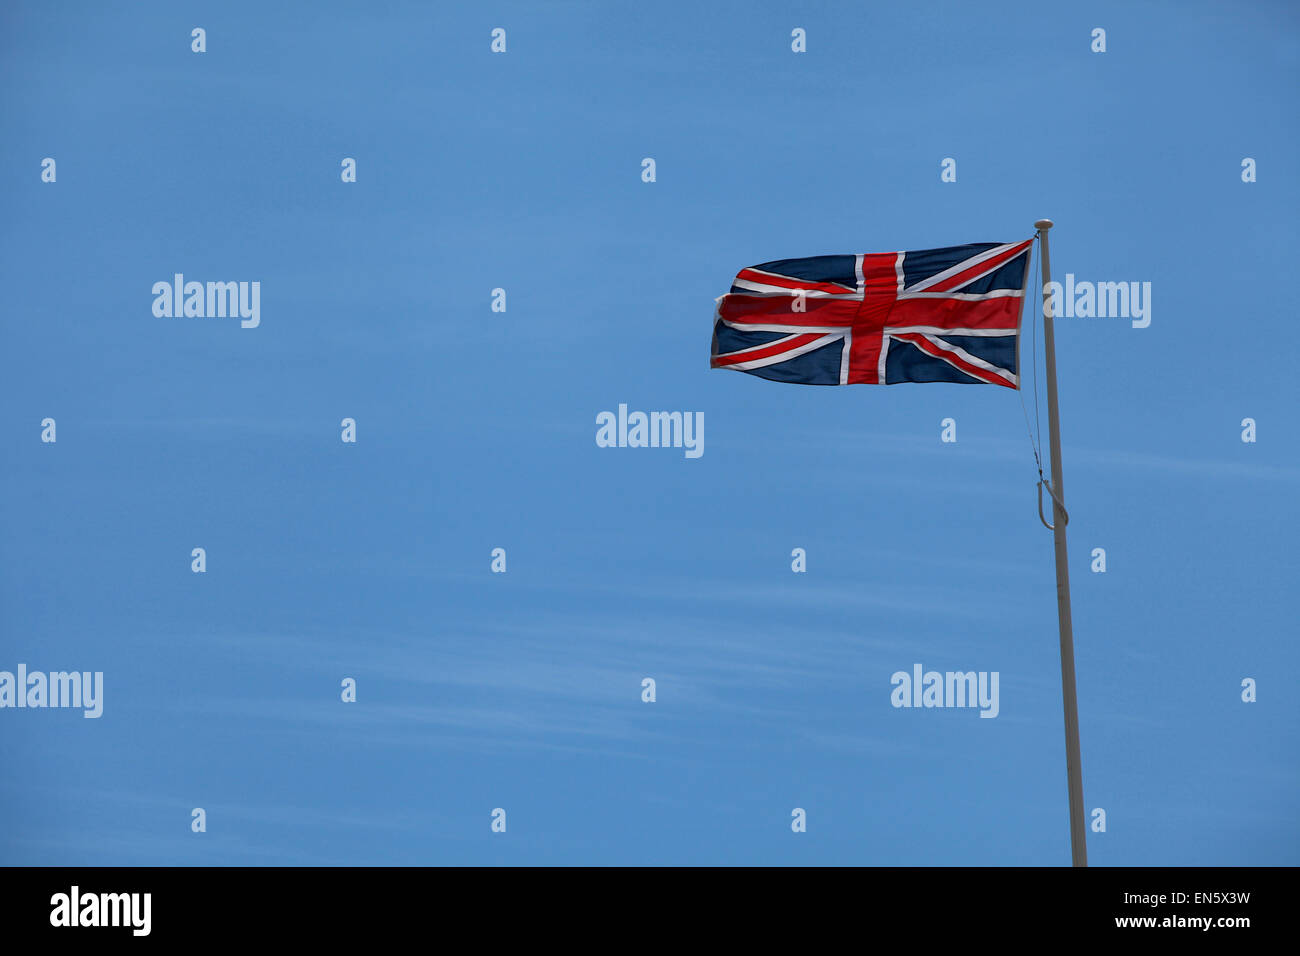 Union Flag flying against a blue sky with copy space - Stock Image